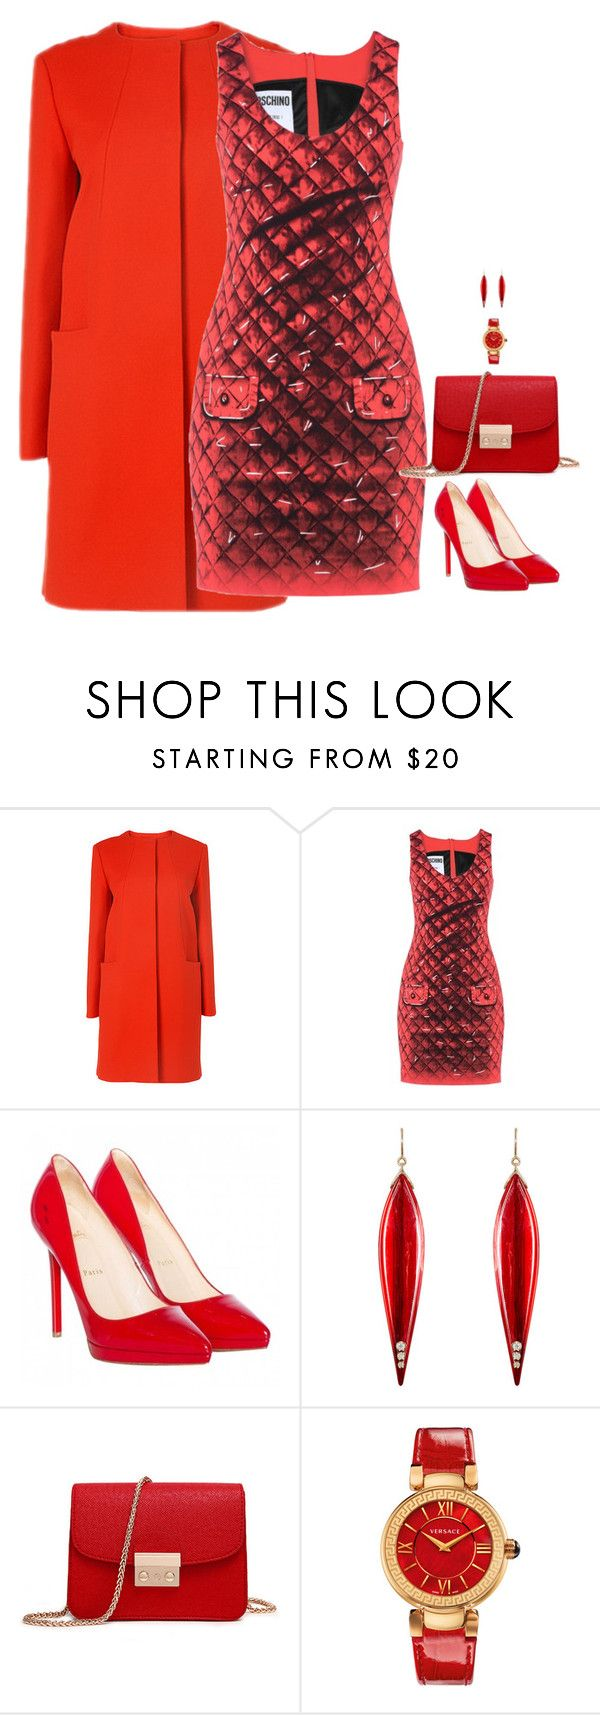 """Untitled #5752"" by miki006 ❤ liked on Polyvore featuring Moschino, Christian Louboutin, Mark Davis and Versace"